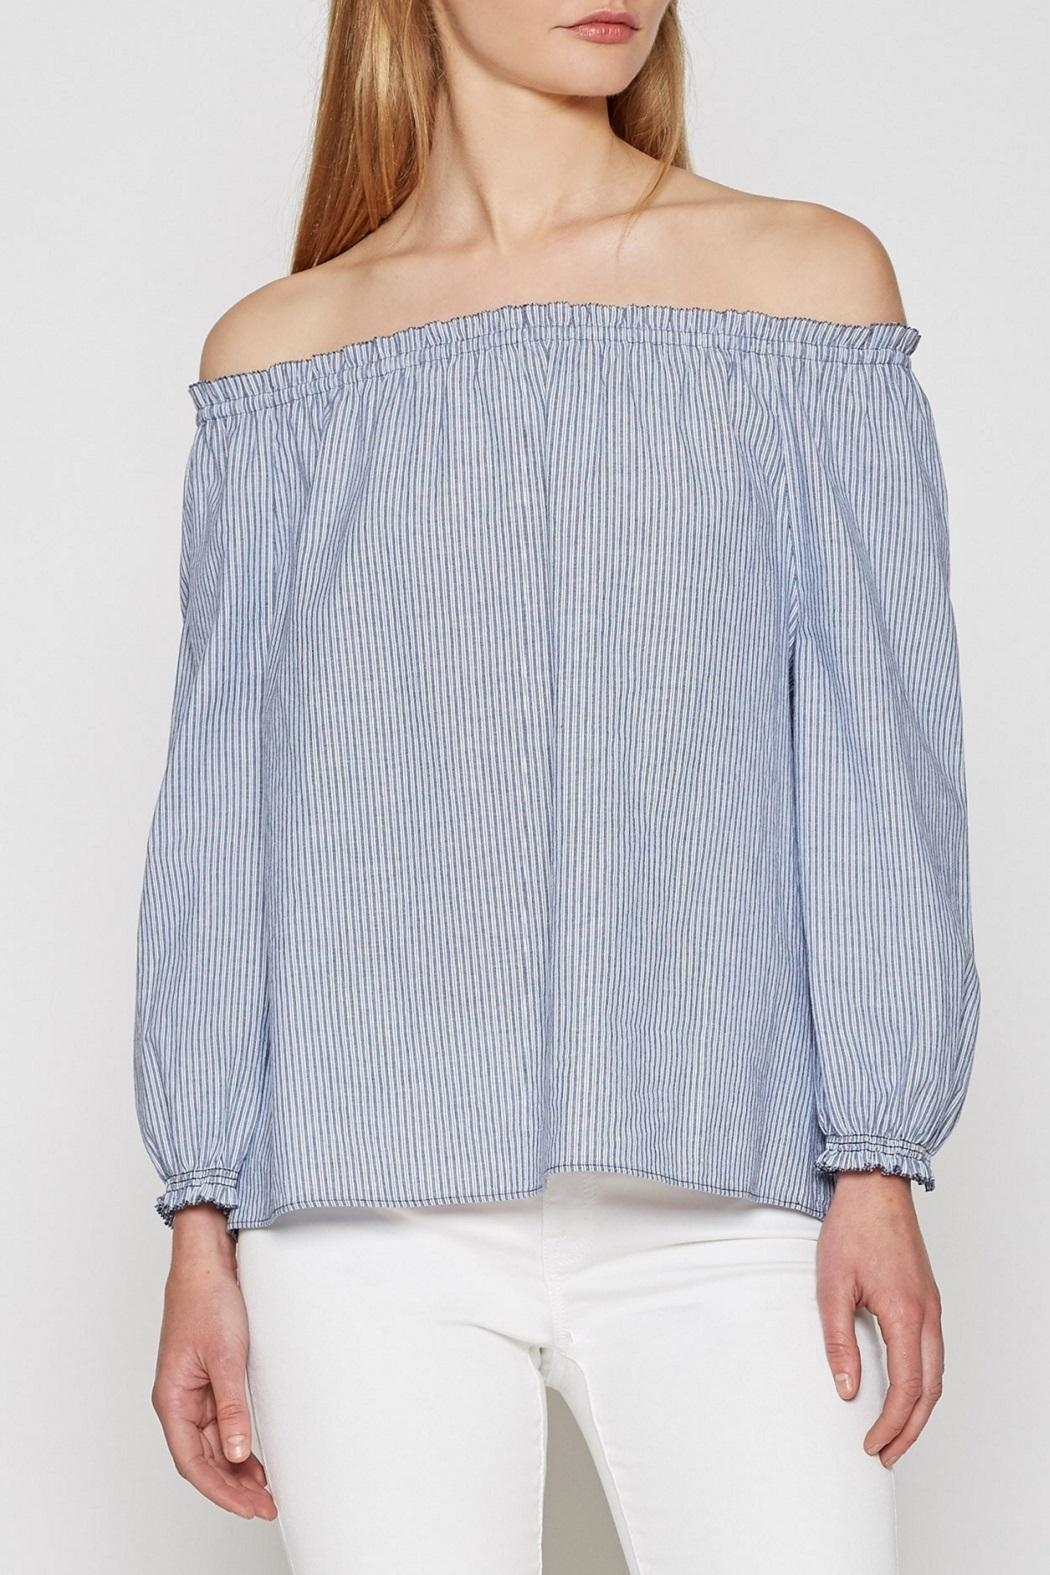 Joie Striped Bamboo Top - Main Image